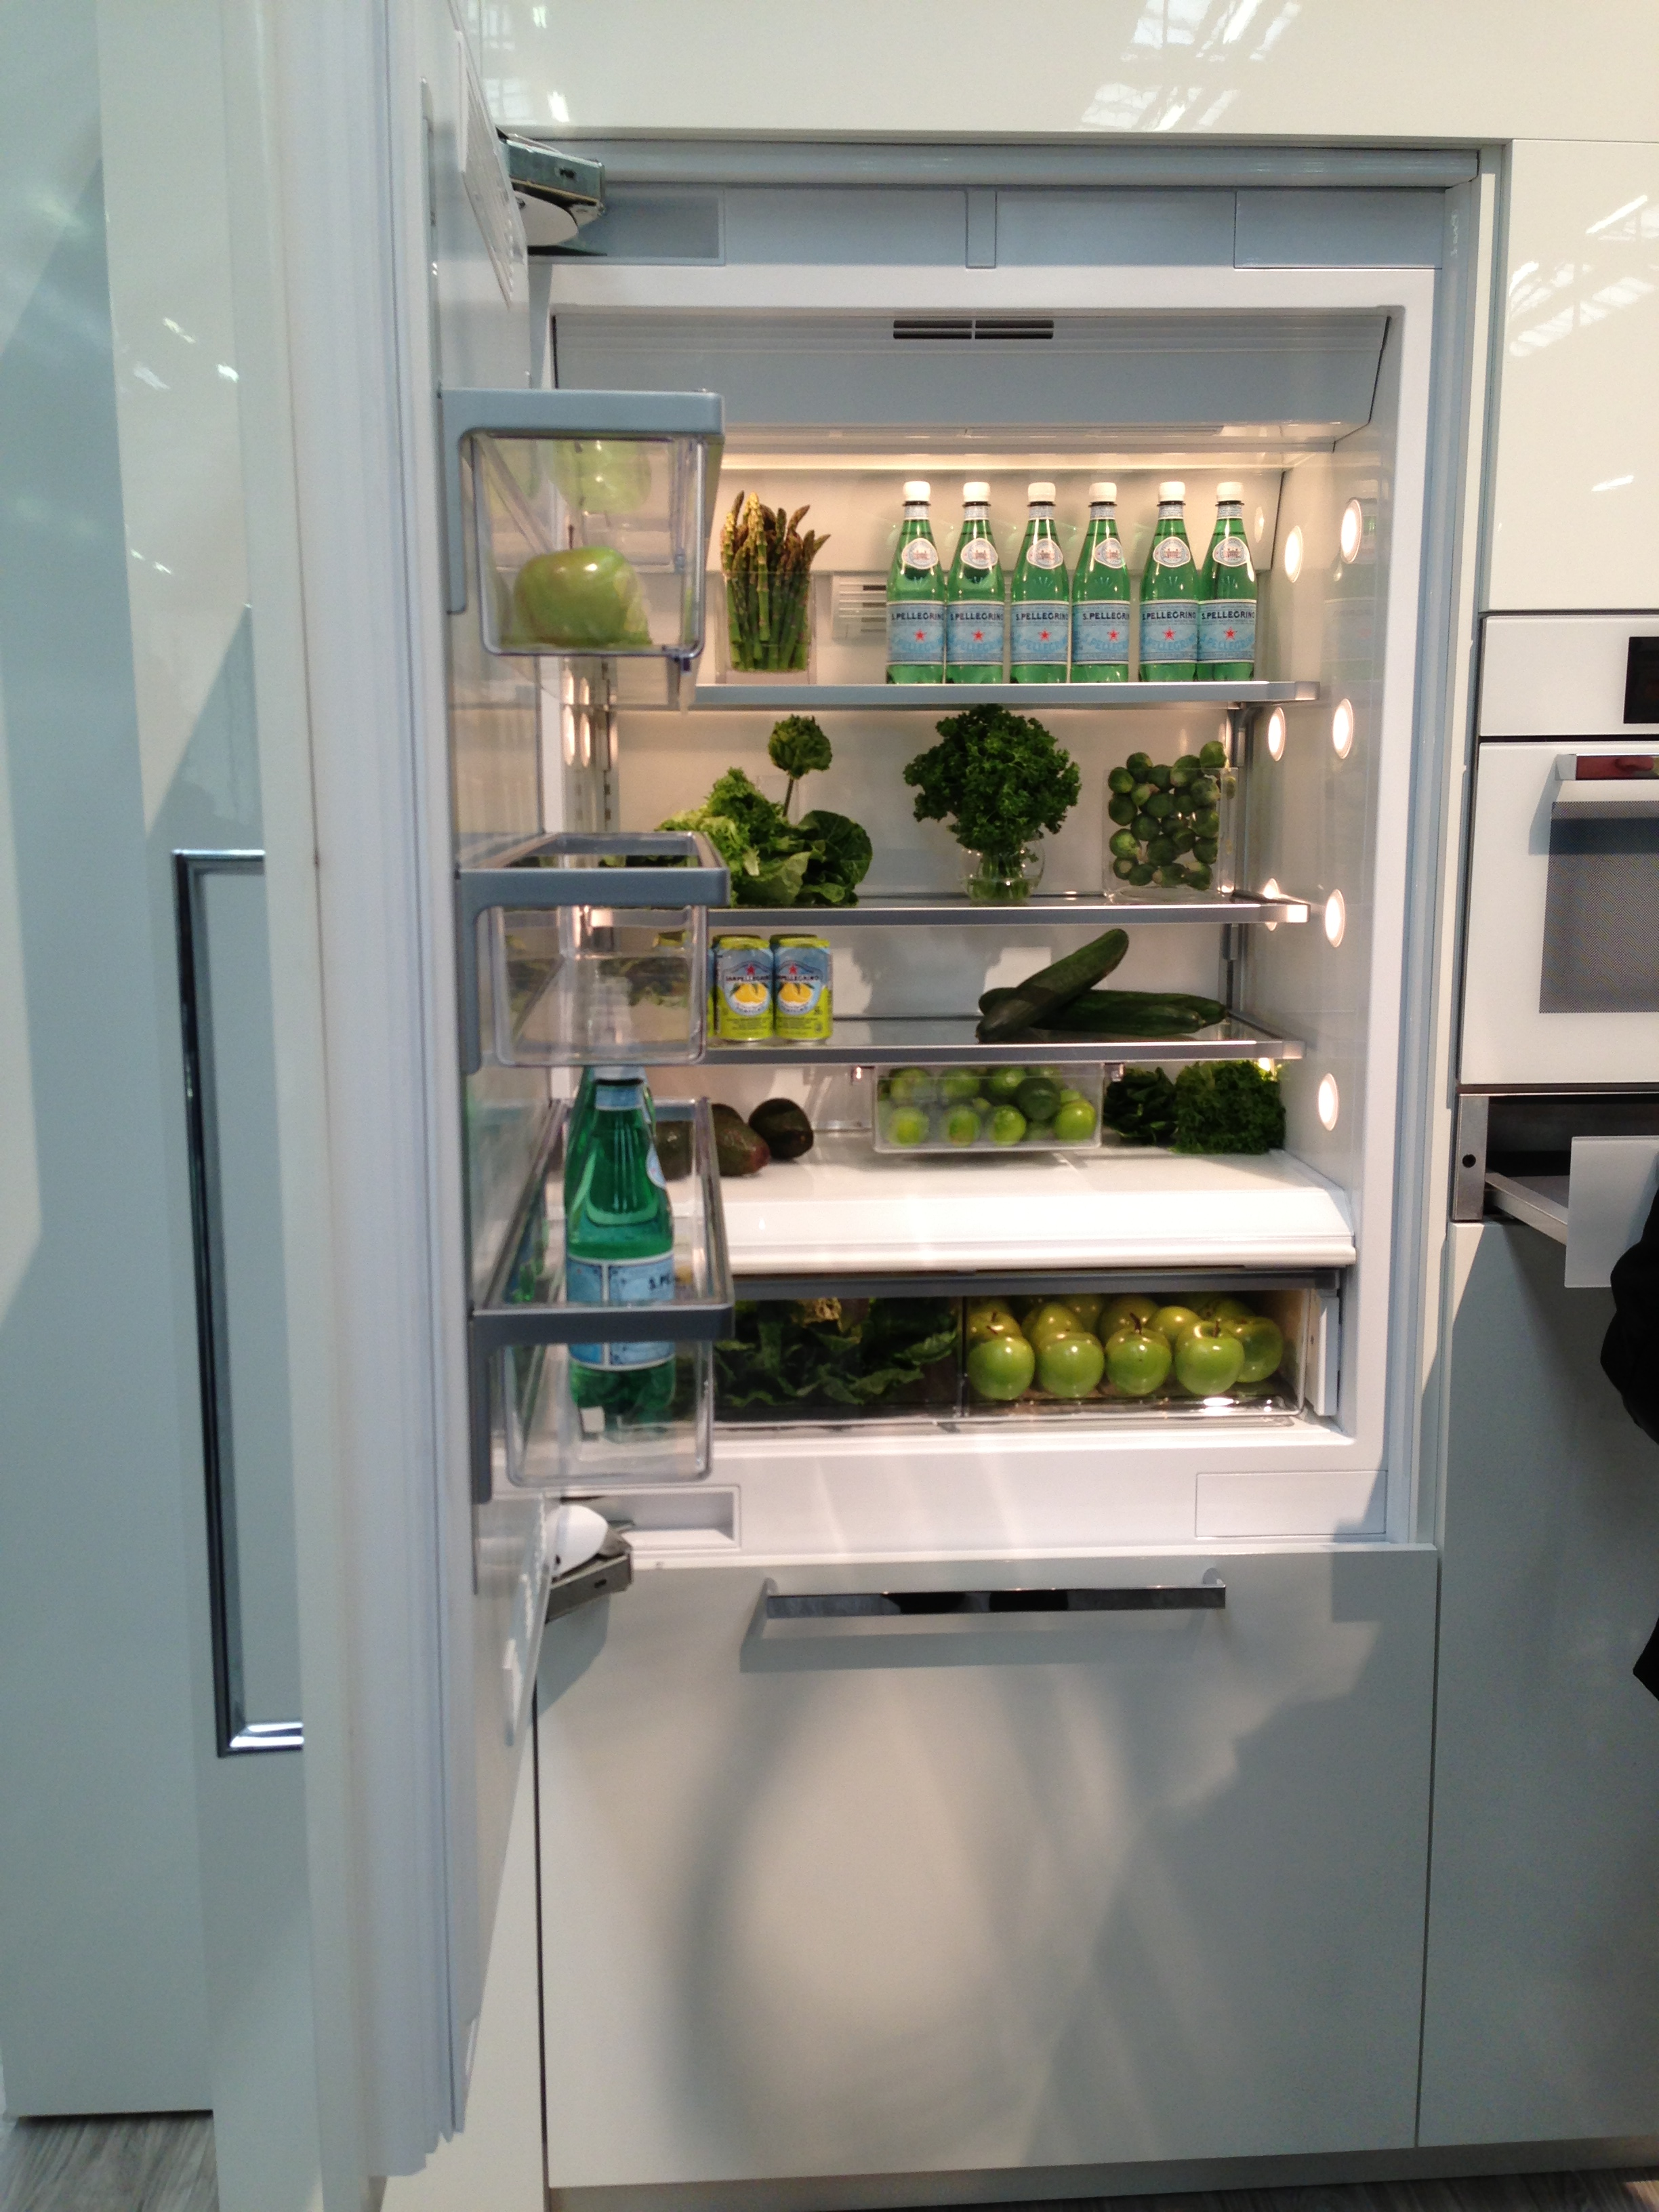 I wouldn't trust anyone who has this organized of a refrigerator.